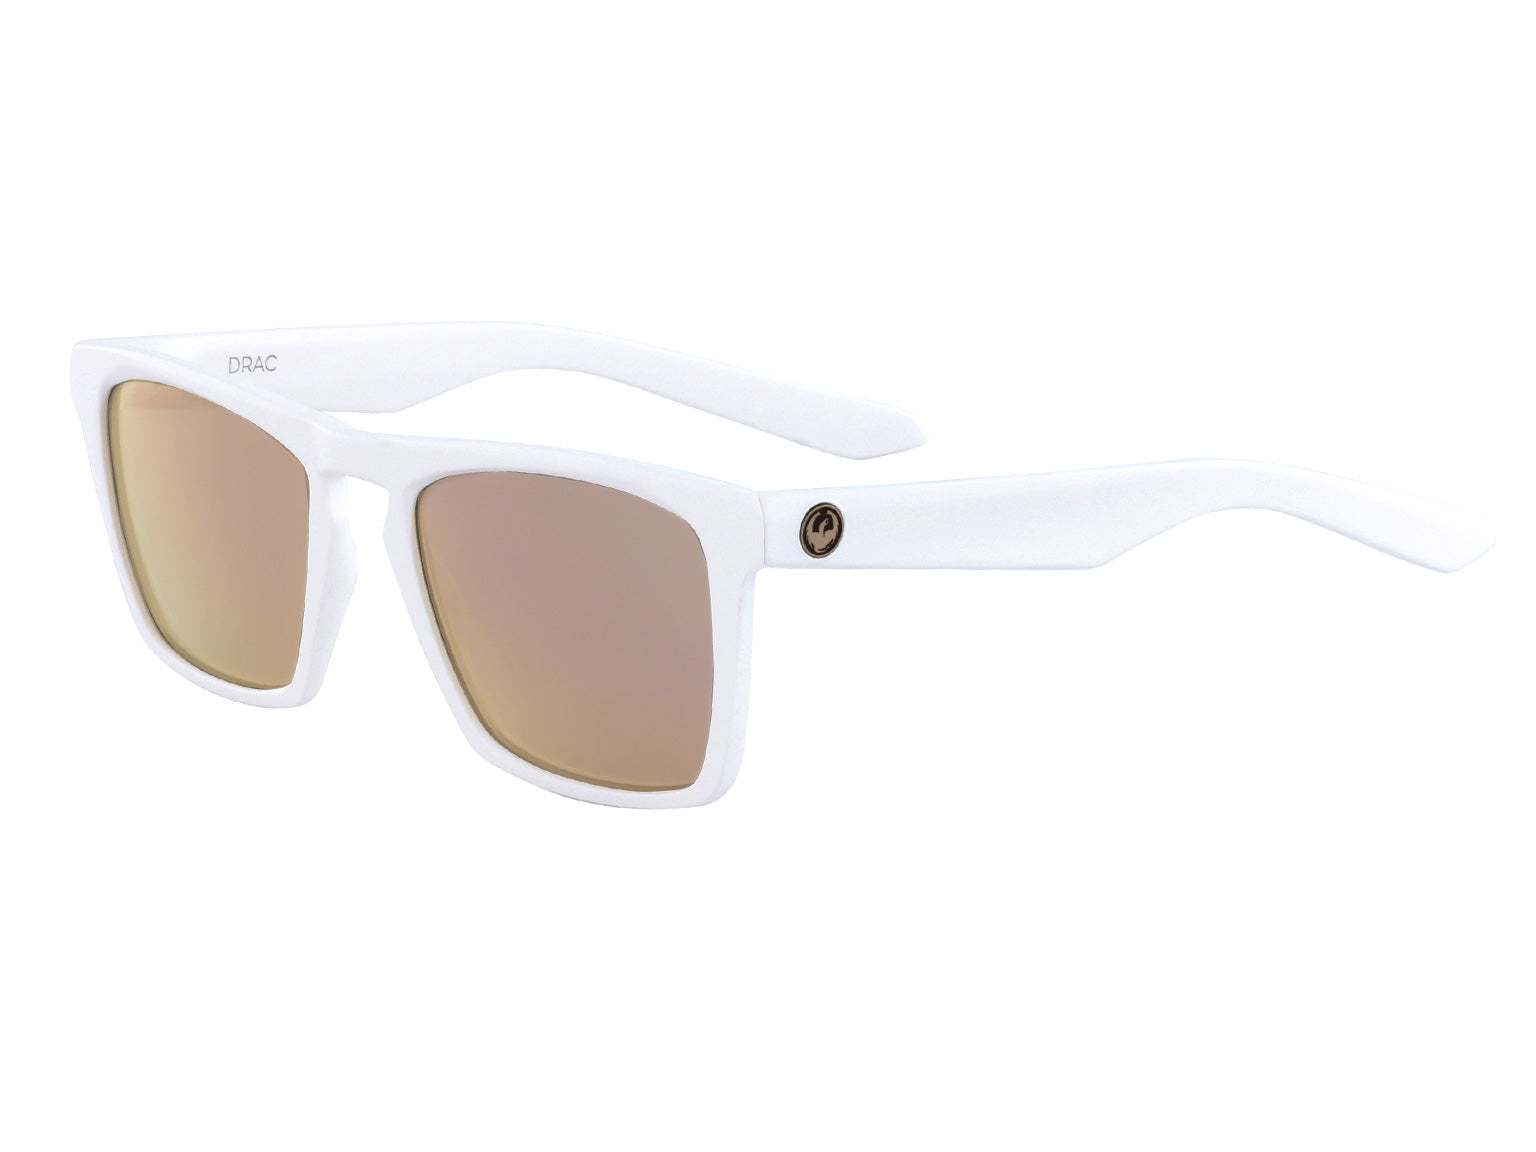 DRAC - Matte White ; with Lumalens Rose Gold Ionized Lens